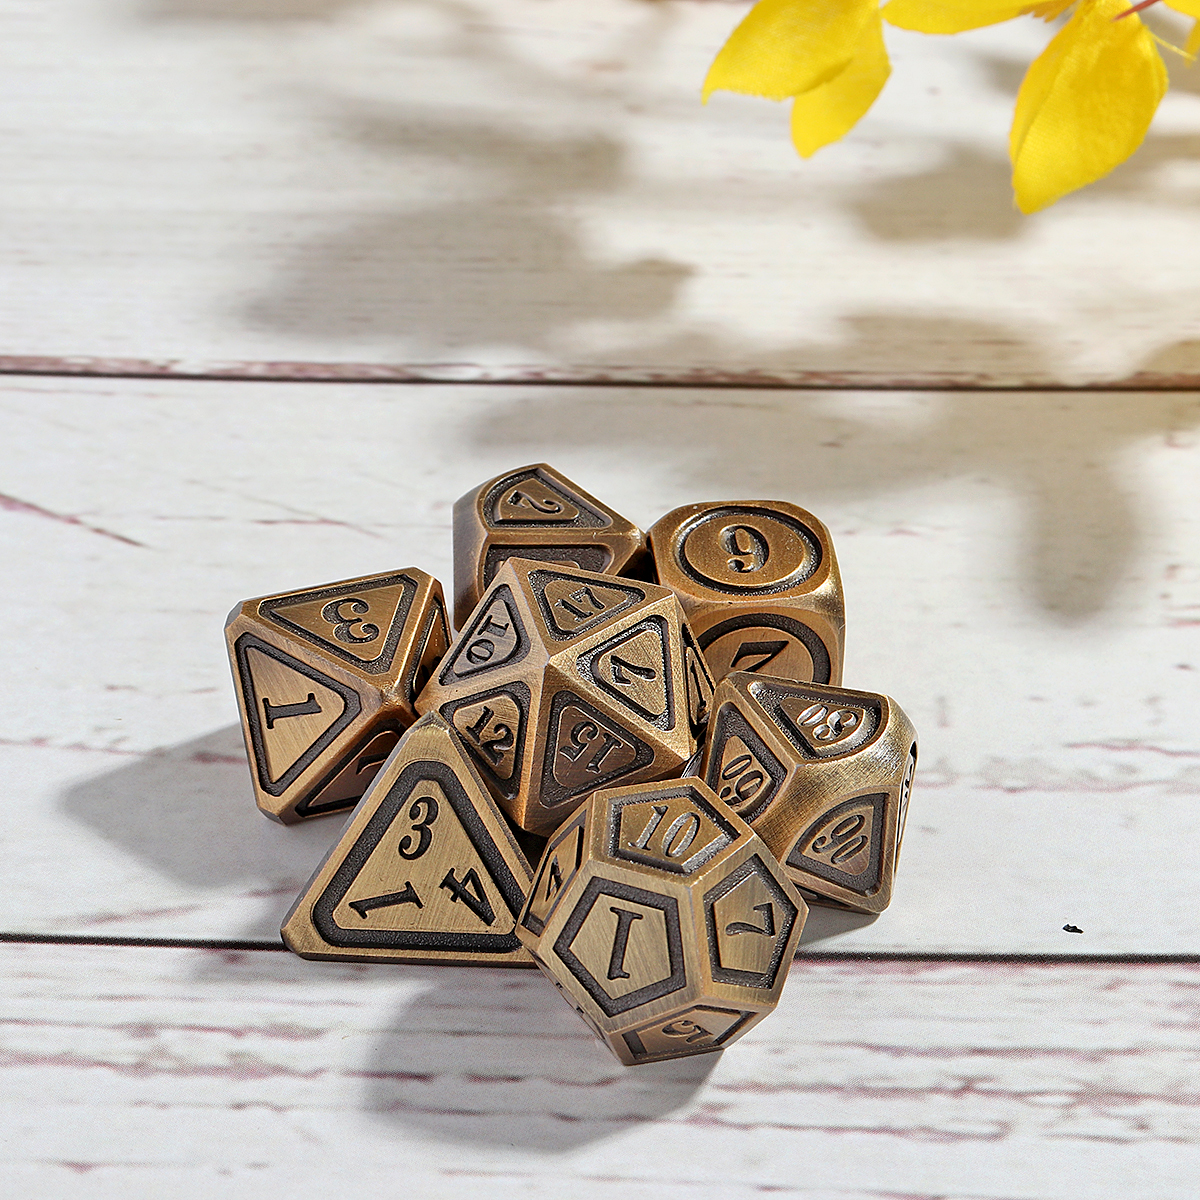 7Pcs DND Polyhedral Dice For Role Playing Game Metal Dice Set